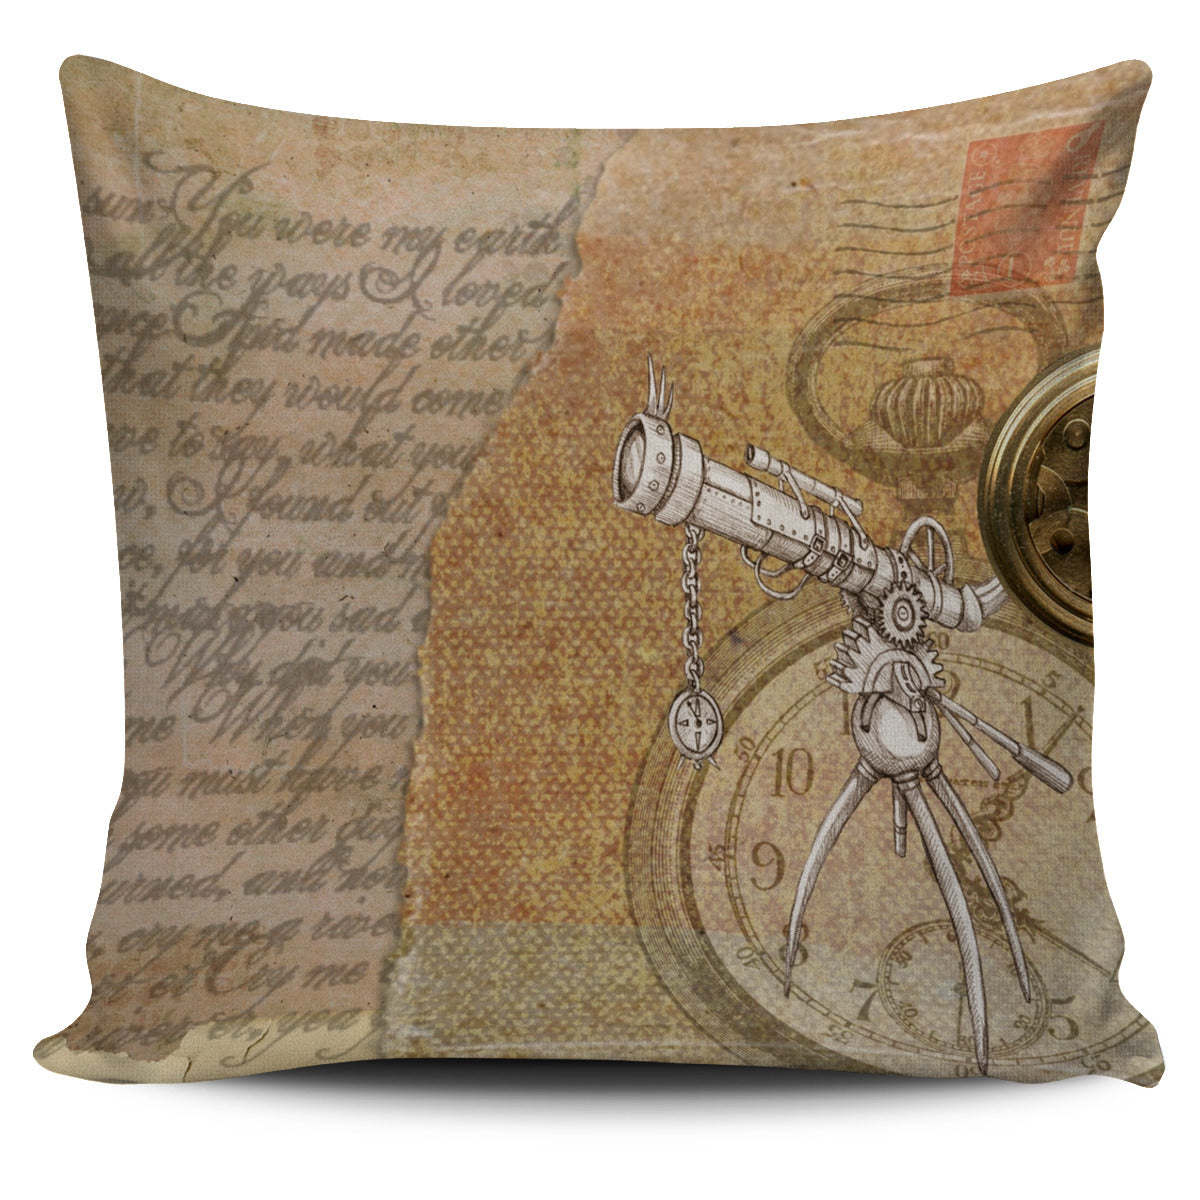 Steampunk Scope Pillow Cover - Hello Moa